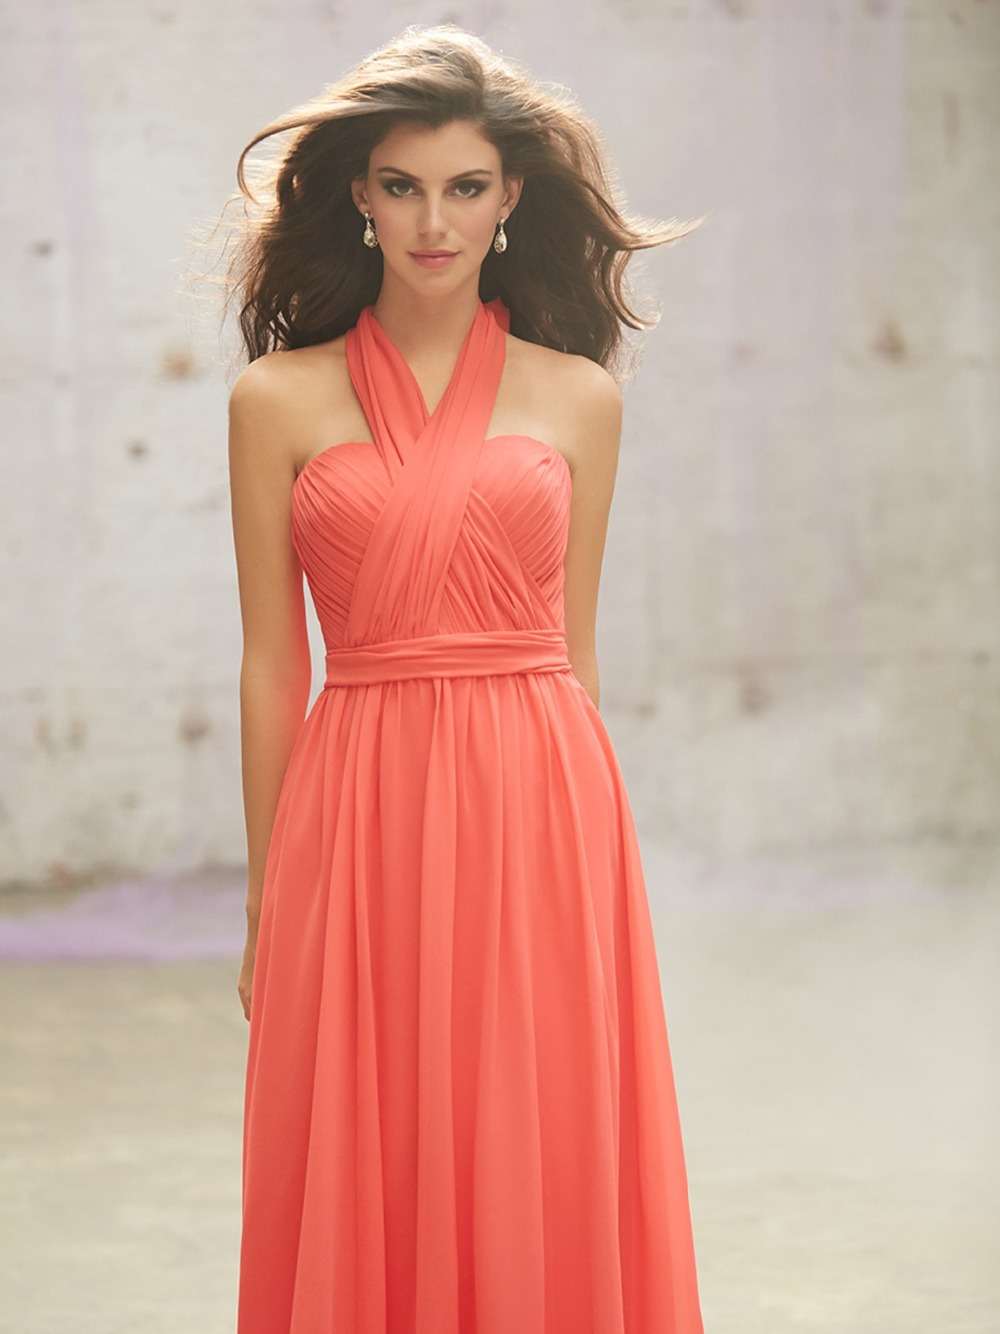 Dress rayon picture more detailed picture about low price custom low price custom made coral colored chiffon full length sleeveless long bridesmaid dress convertible dresses vogue ombrellifo Images